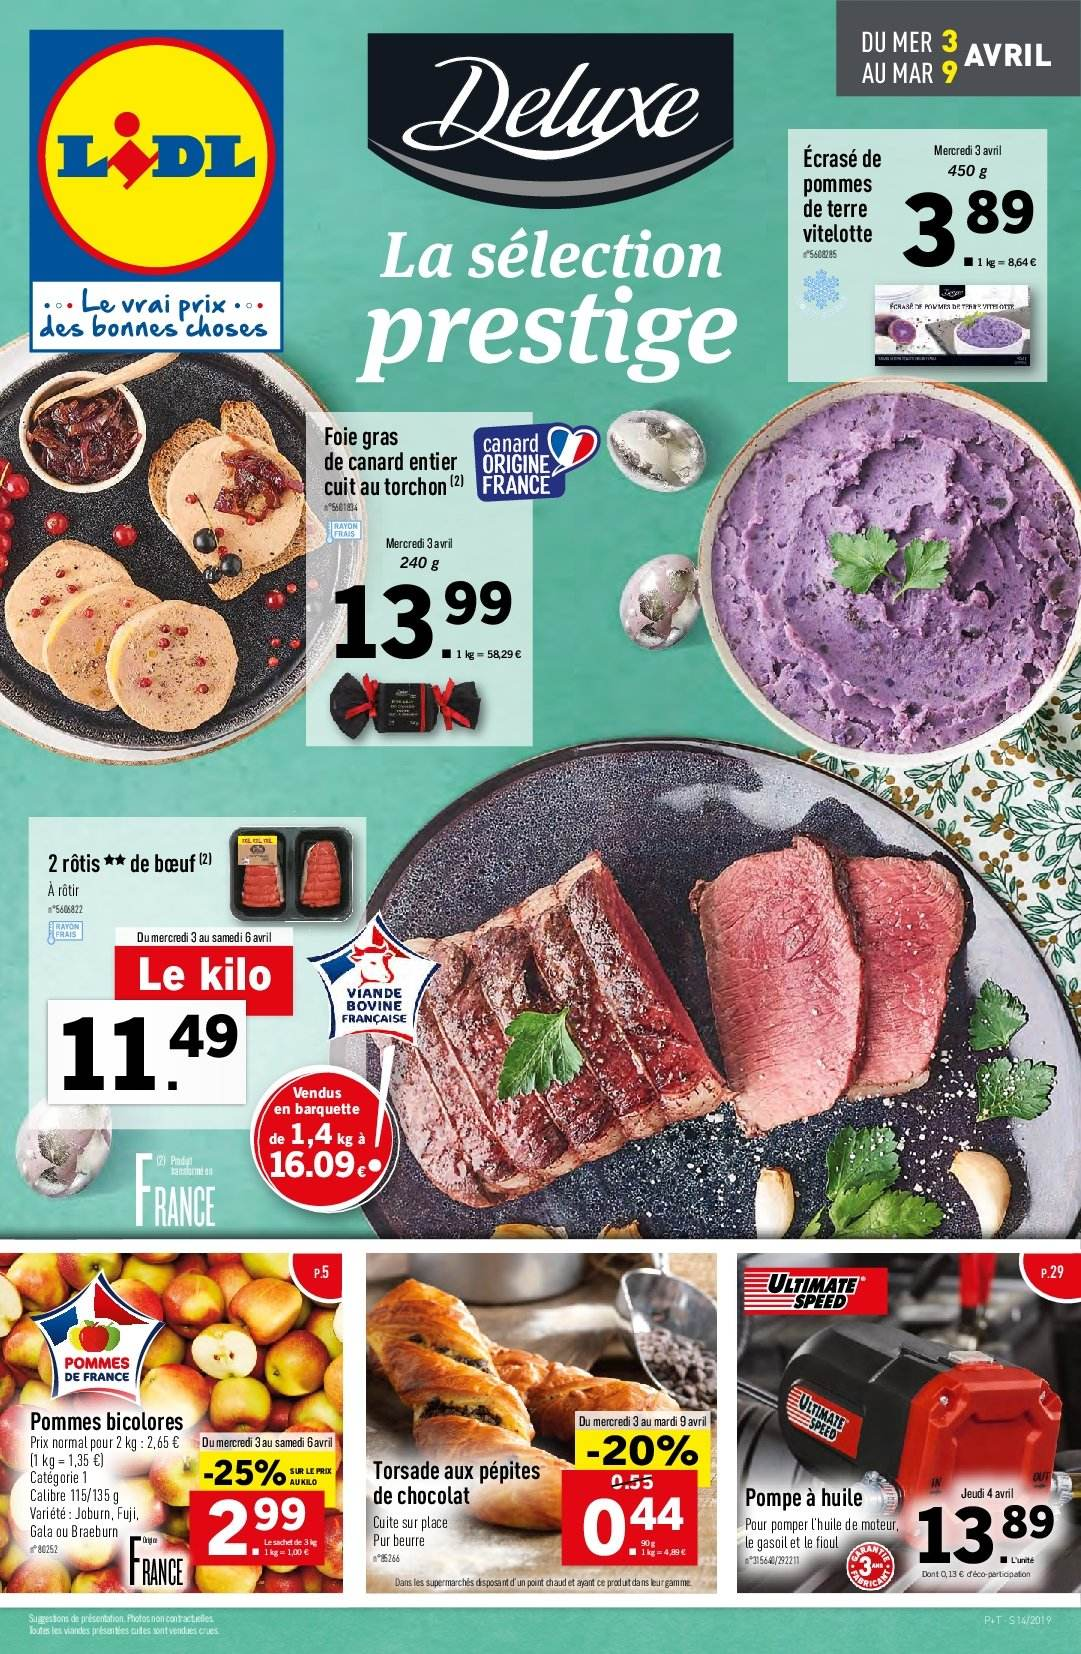 Catalogue Lidl - 03.04.2019 - 09.04.2019. Page 1.